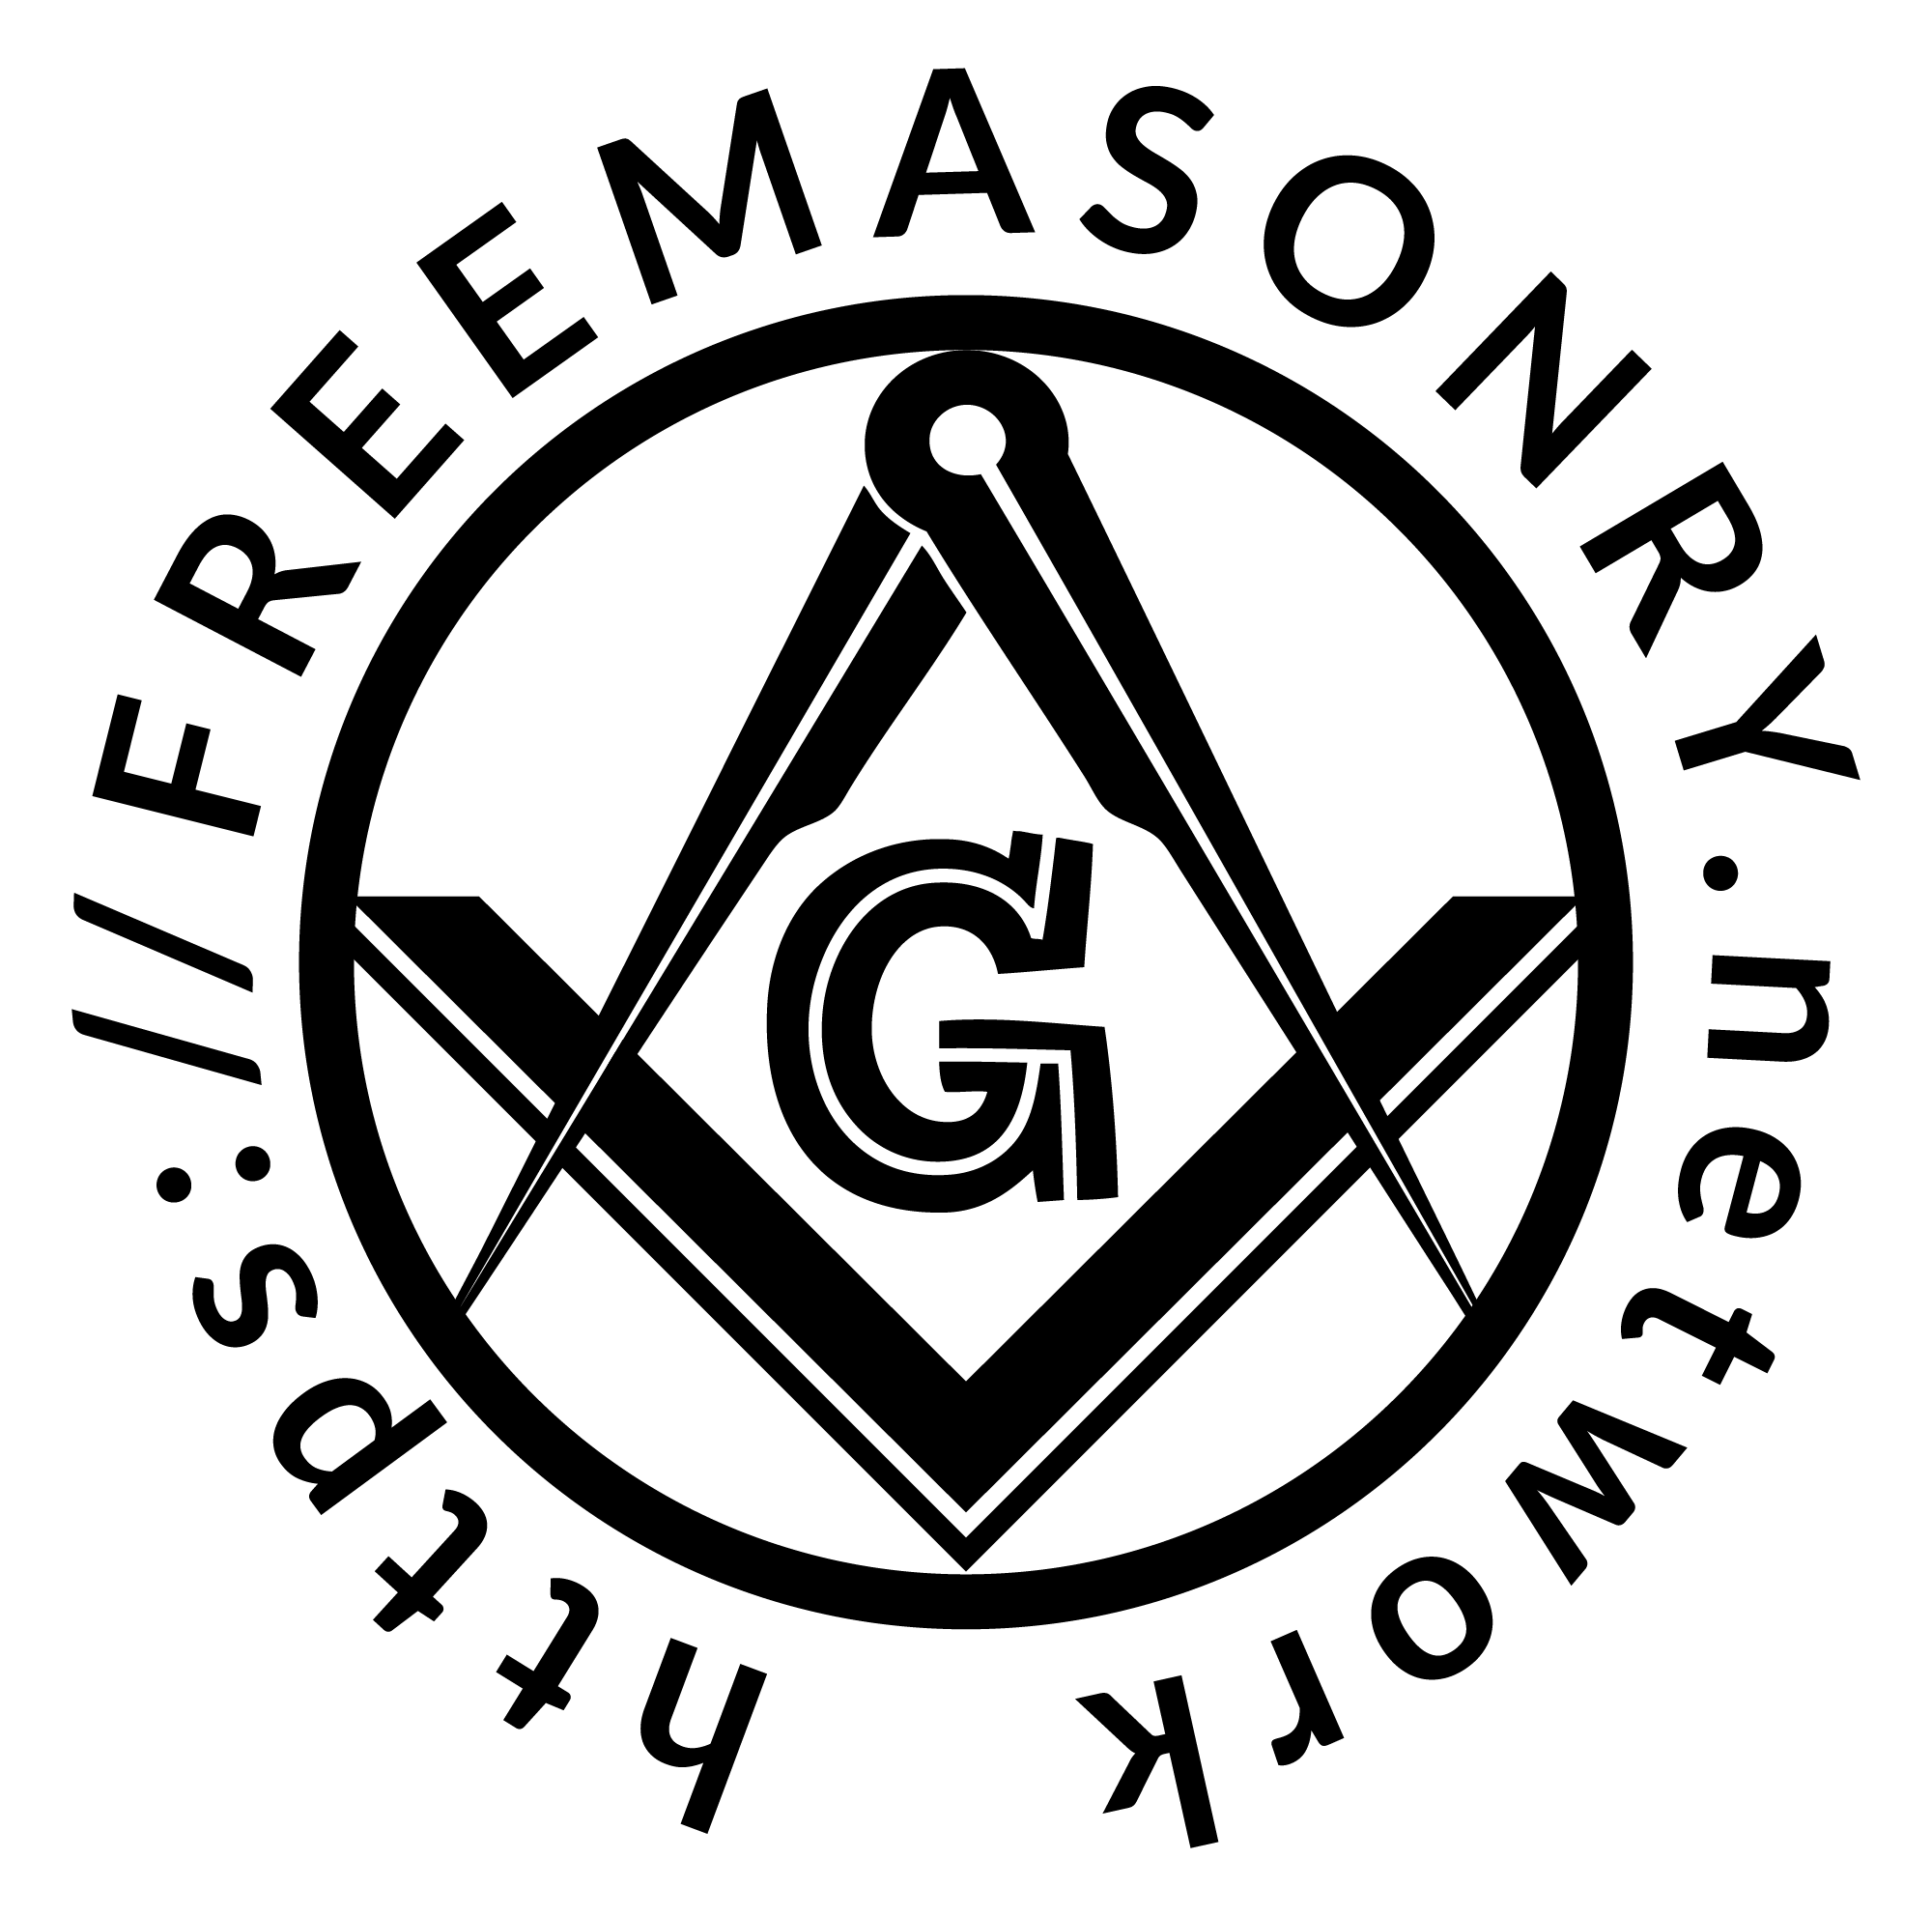 FREEMASONRY AND INTERNET